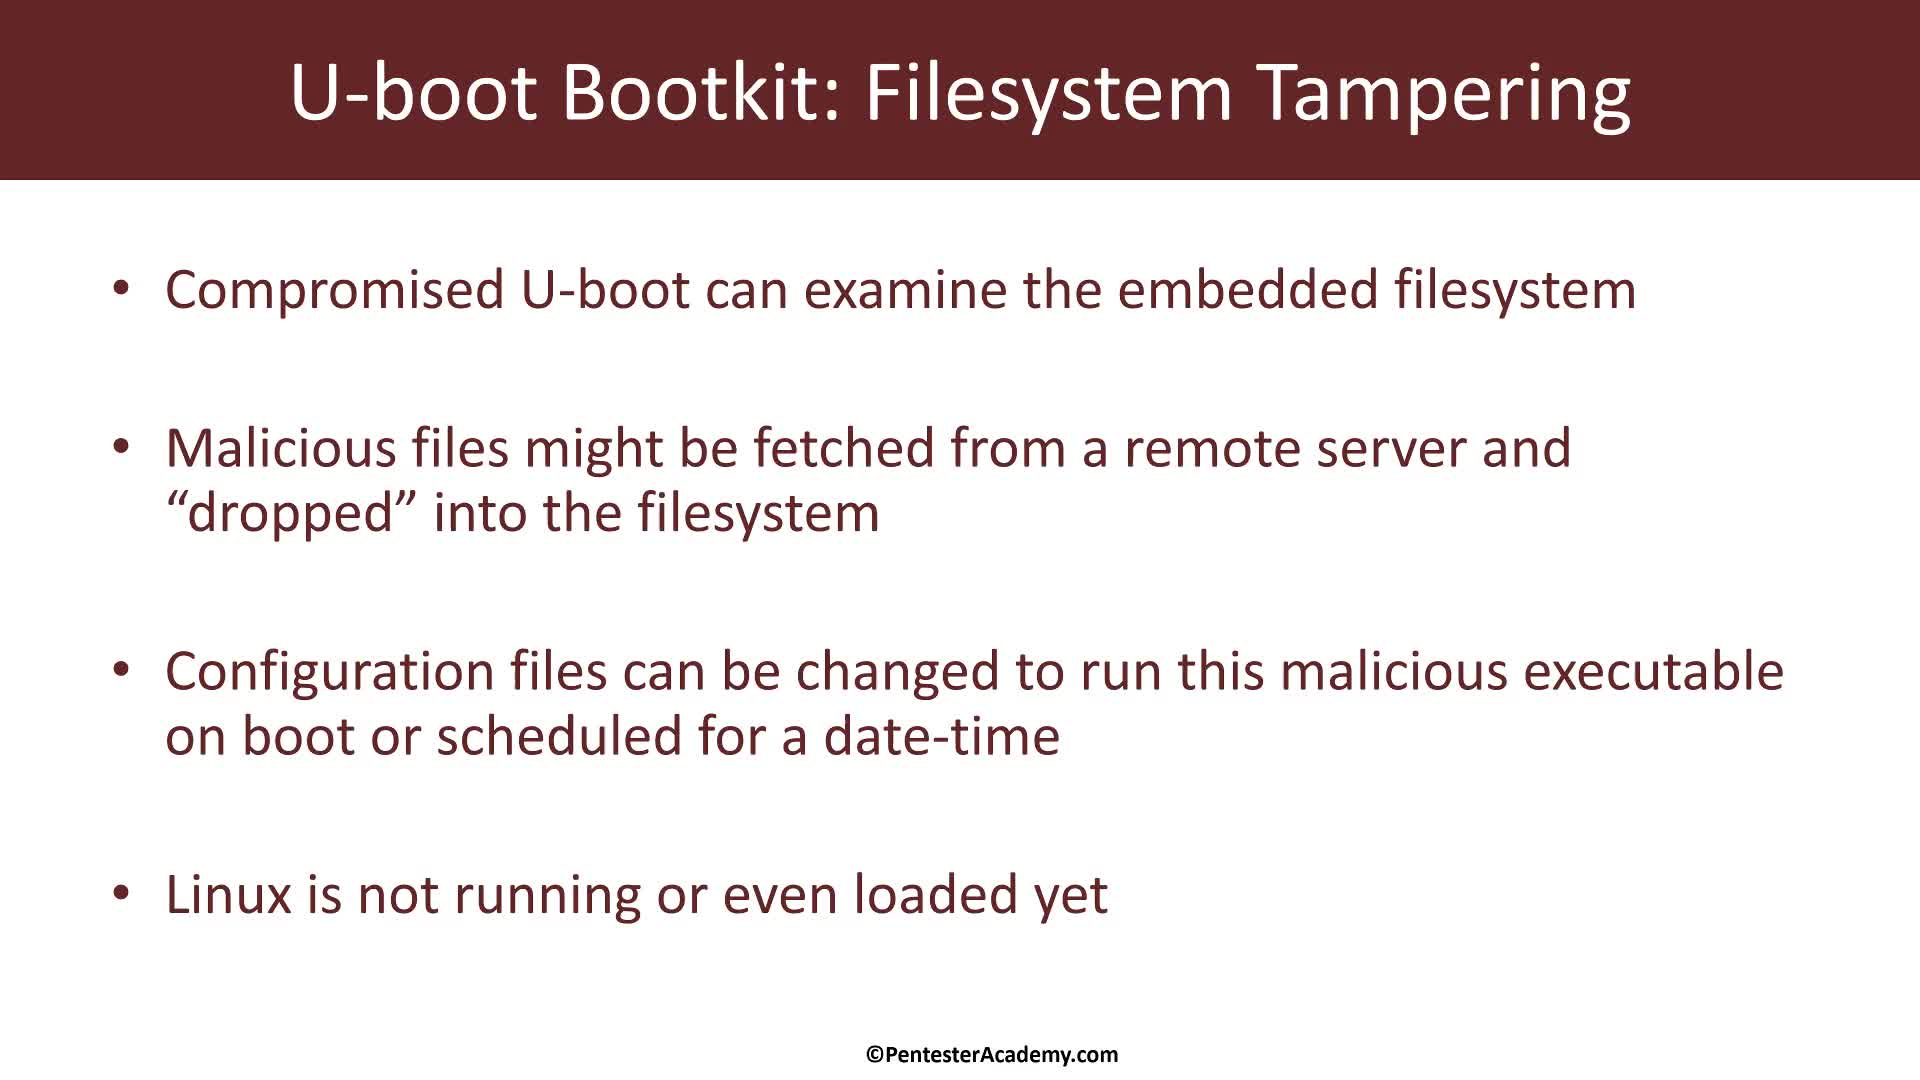 U-Boot Bootkit: Filesystem Tampering